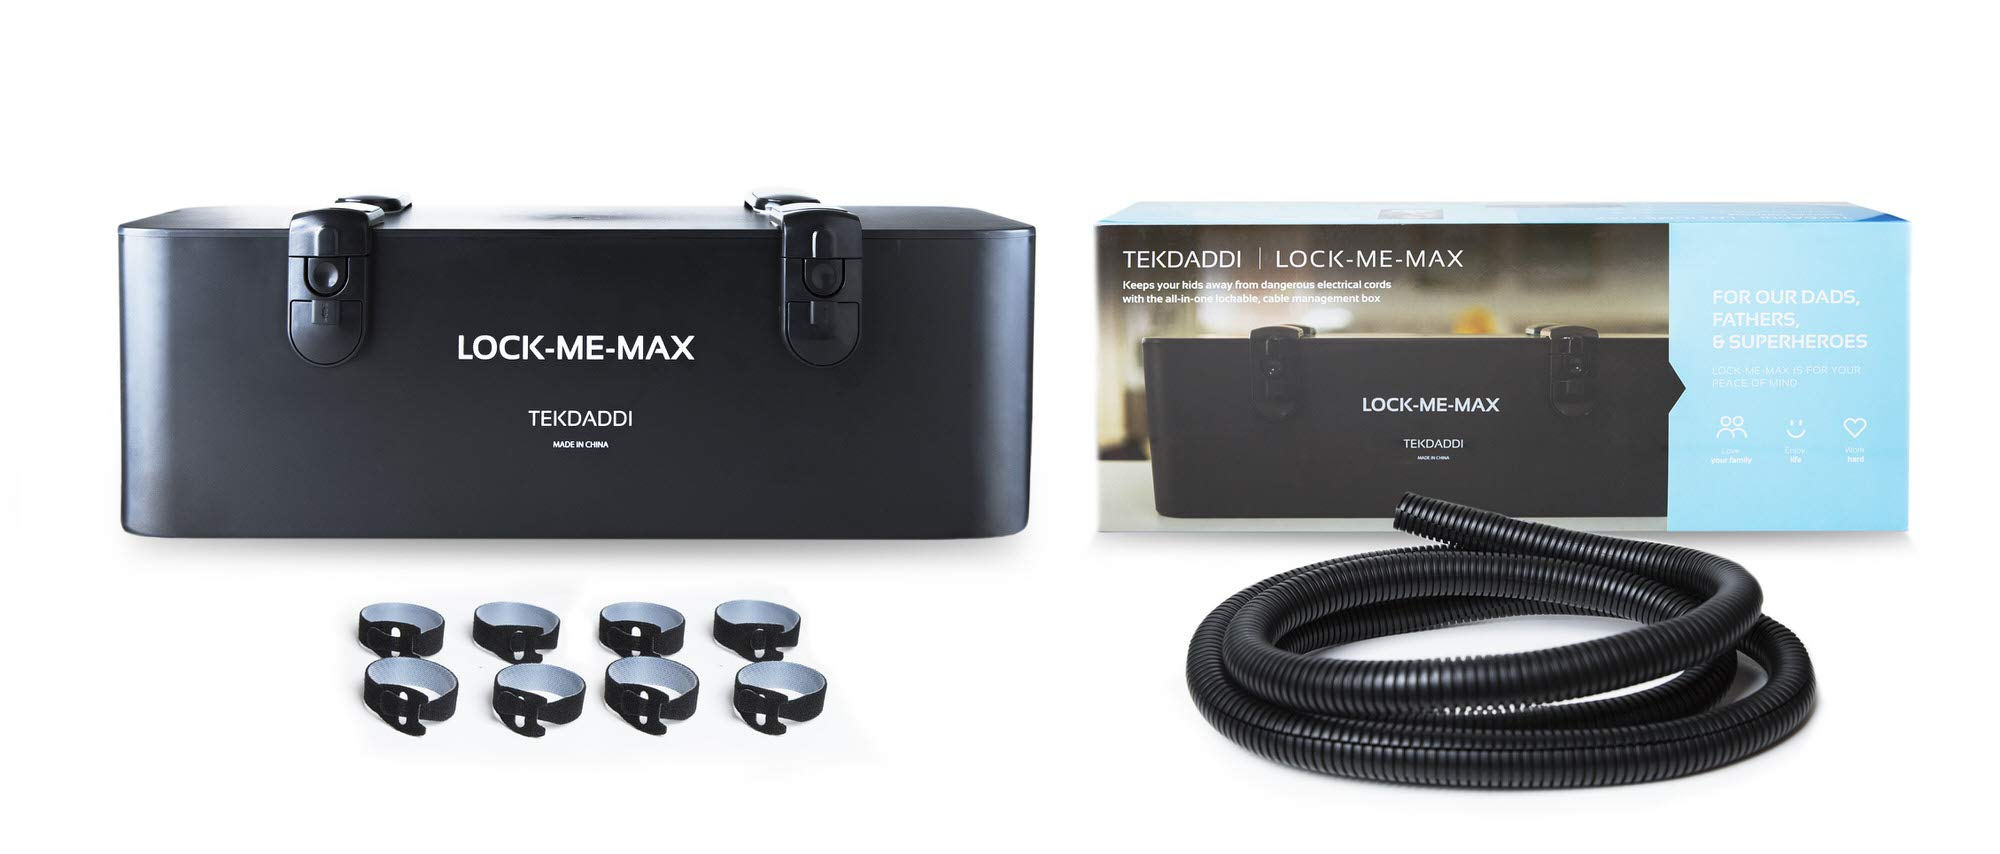 Lock-Me-Max Cable Management - Cord, Cable and Wire Organizer - Cable Box and Wire Hider to Baby Proof The House - Black Box Organizers for TV Cables, Under Desk Cords, Hide Wires and Surge Protector